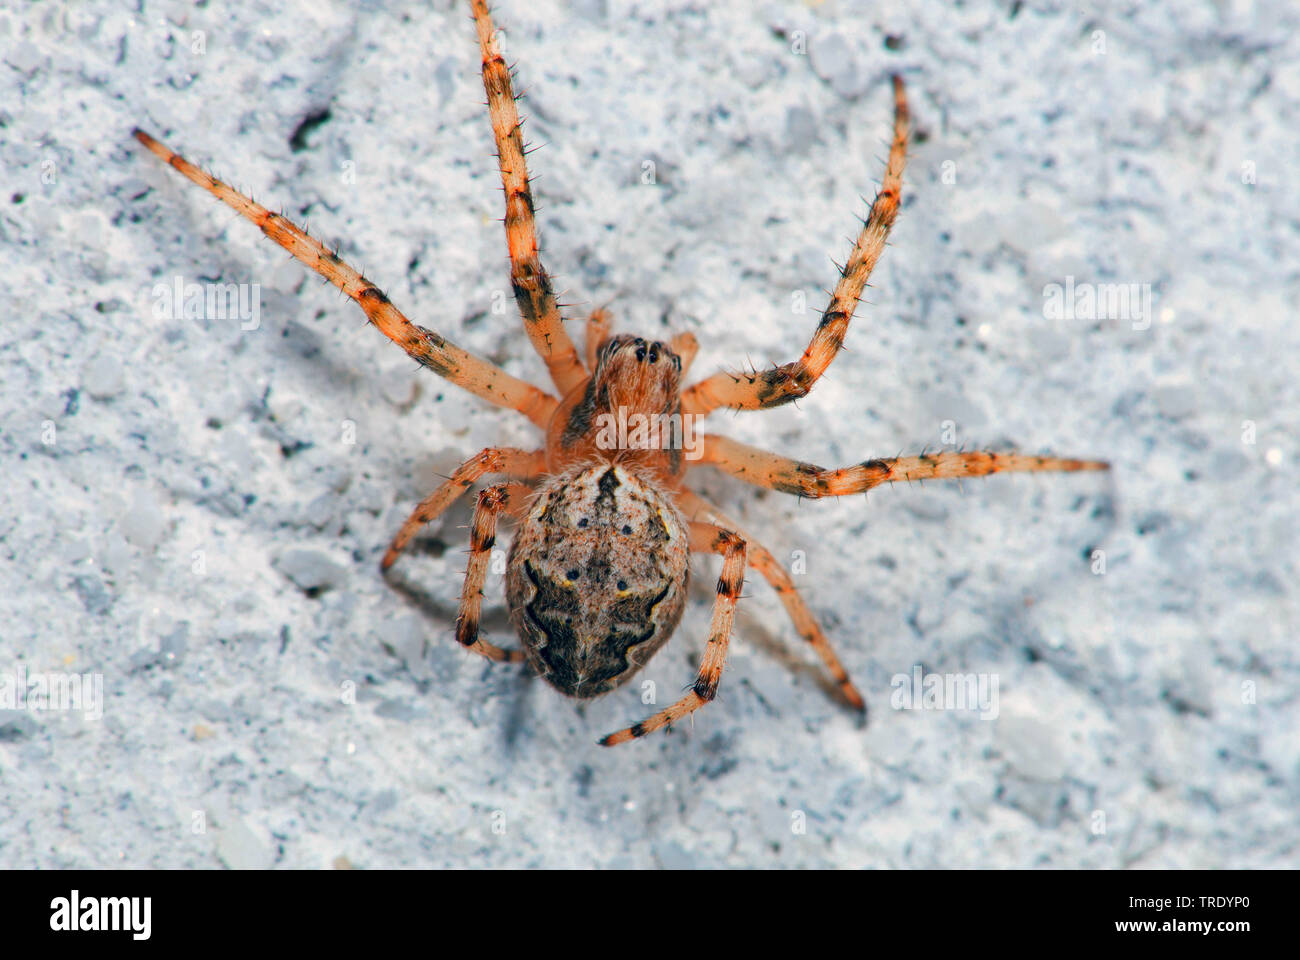 Brueckenkreuzspinne, Bruecken-Kreuzspinne (Larinioides sericatus), Aufsicht, Deutschland | Bridge Orbweaver (Larinioides sericatus), top view, Germany - Stock Image